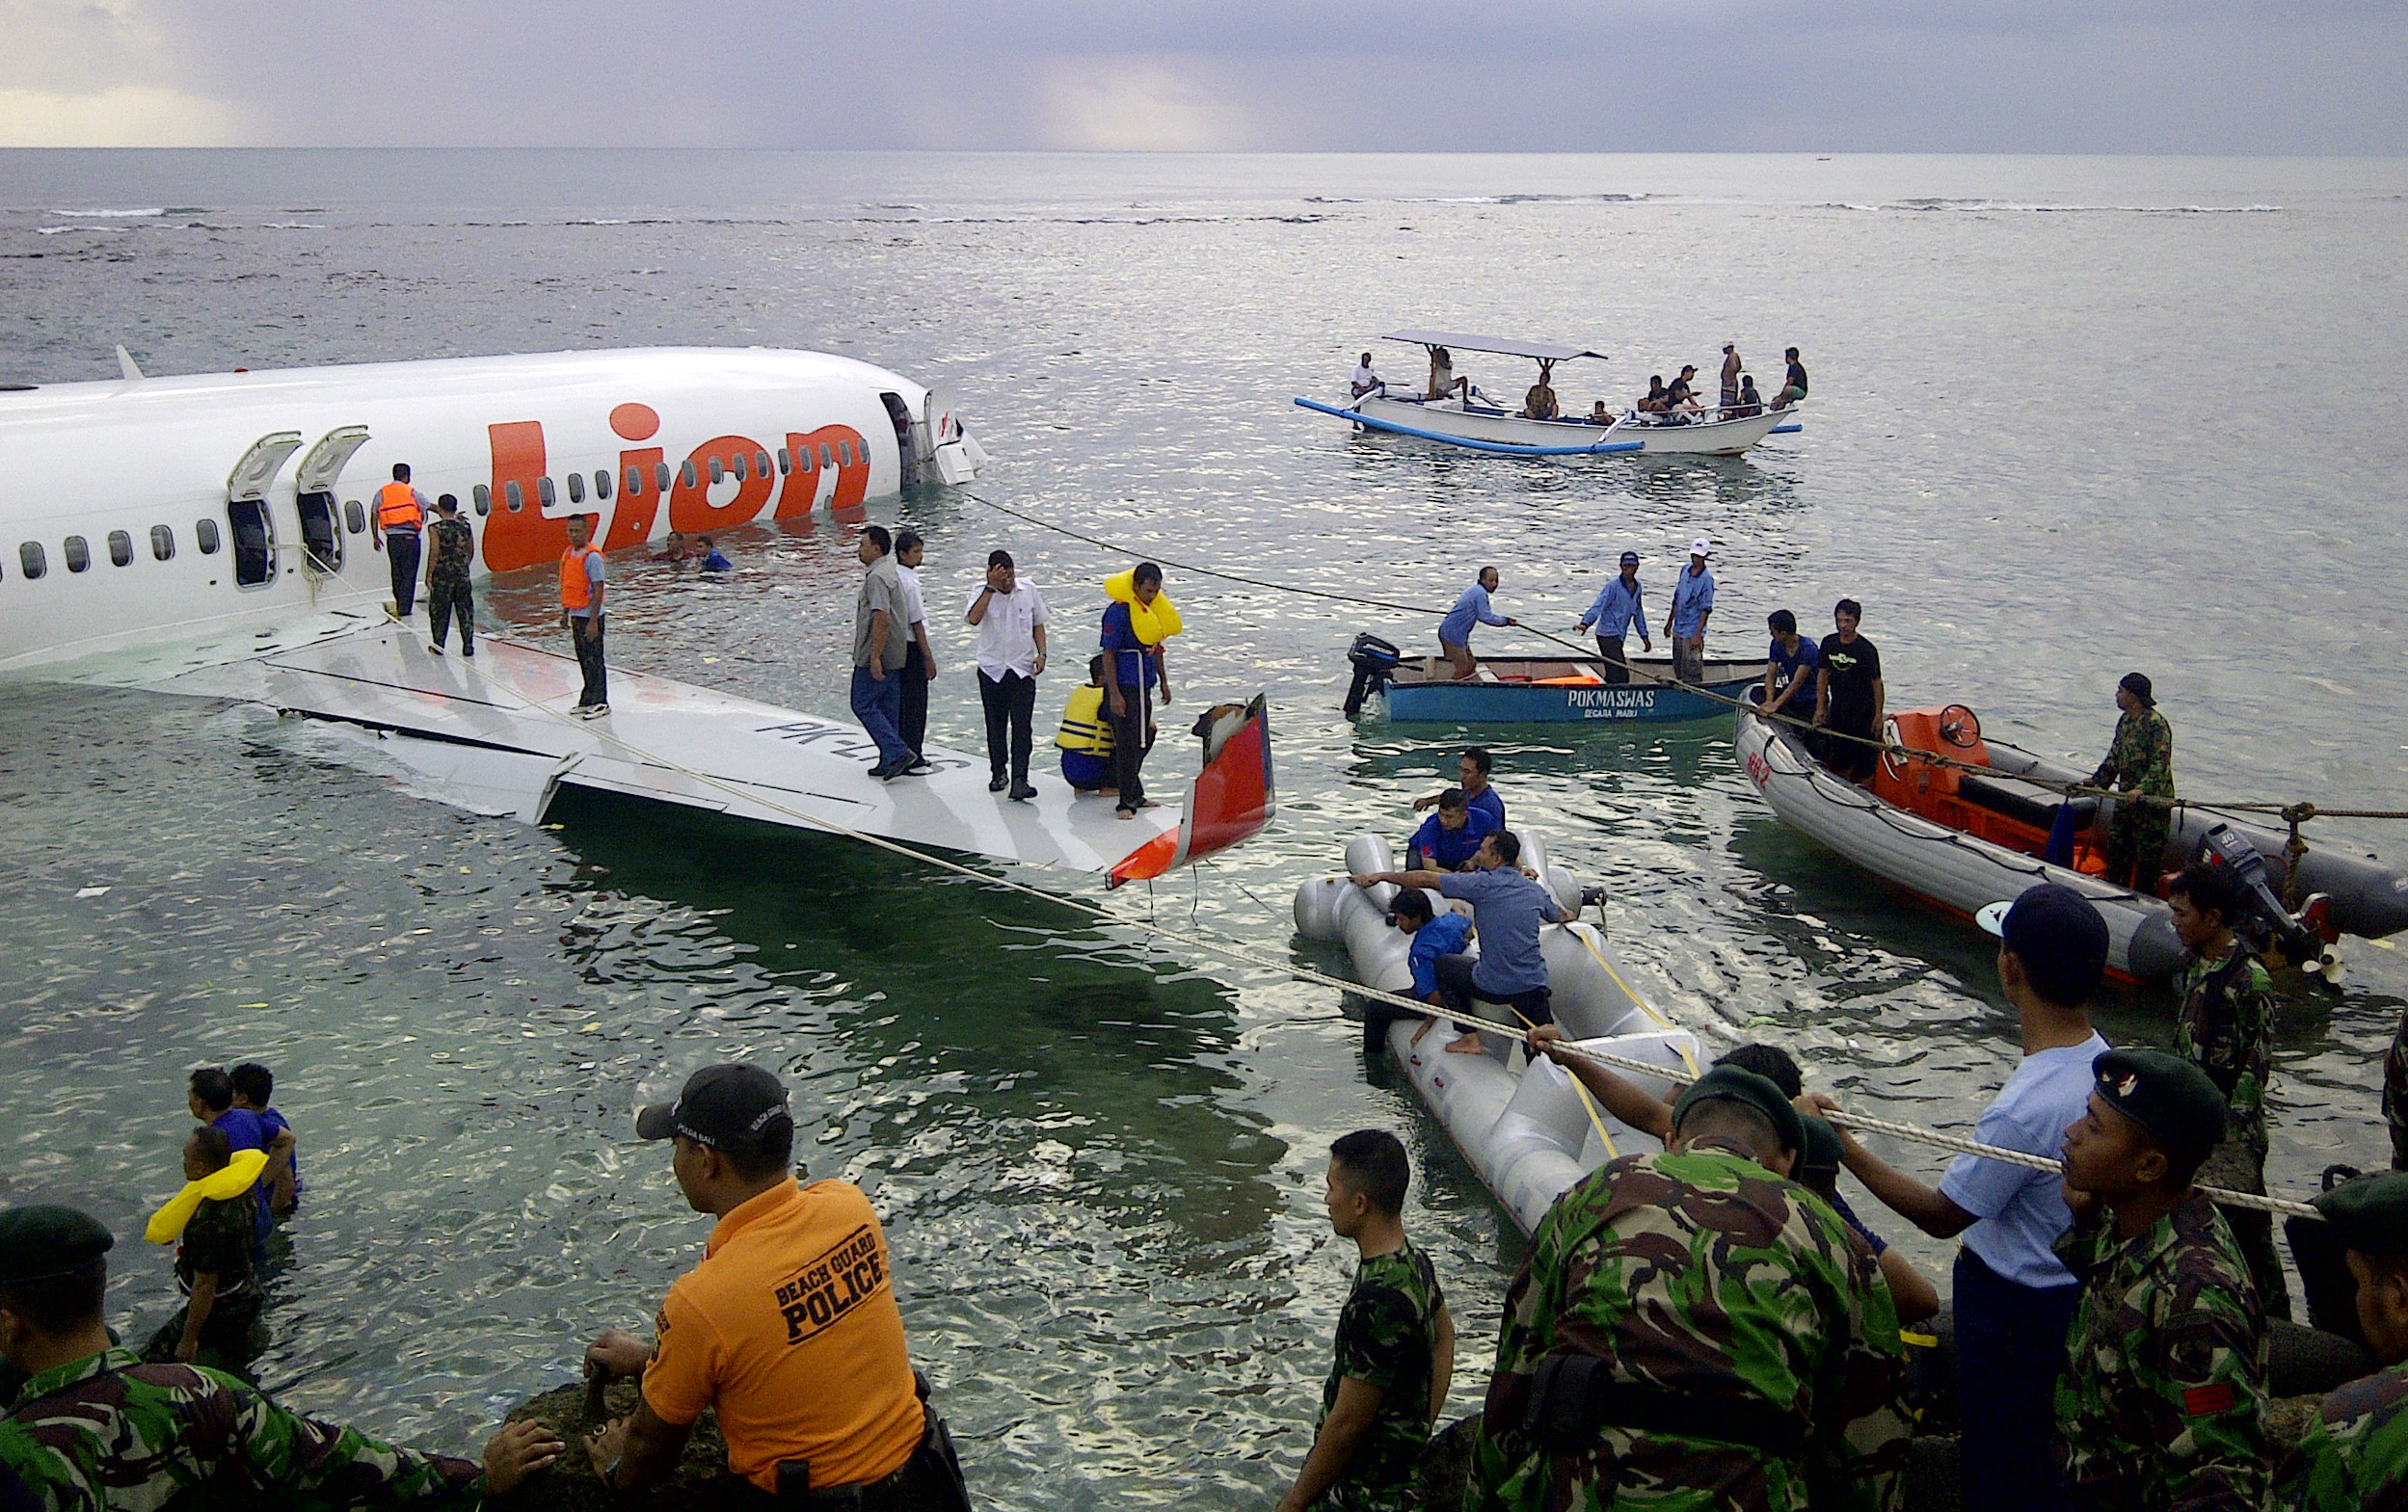 Bali, Indonesia - Miraculously, All 108 On Board Survive